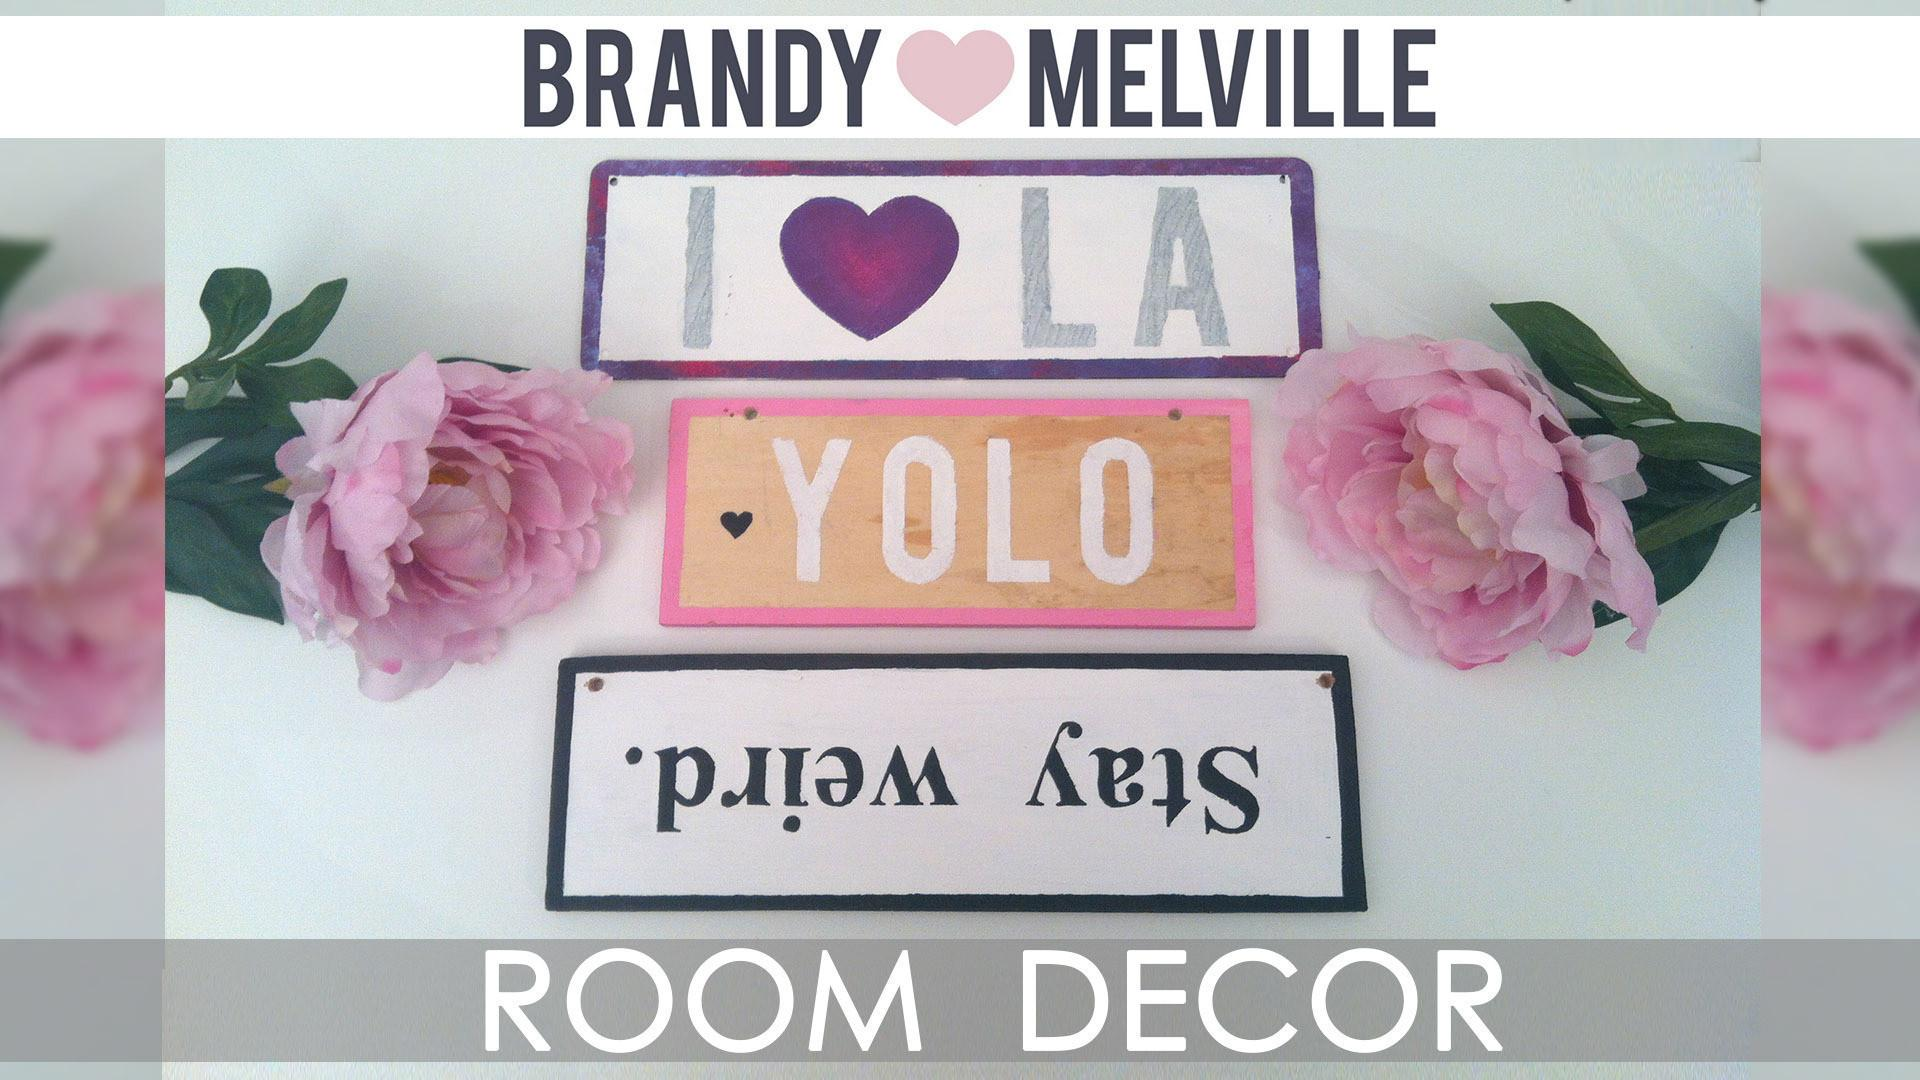 Diy Room Decor Brandy Melville Inspired Wooden Signs